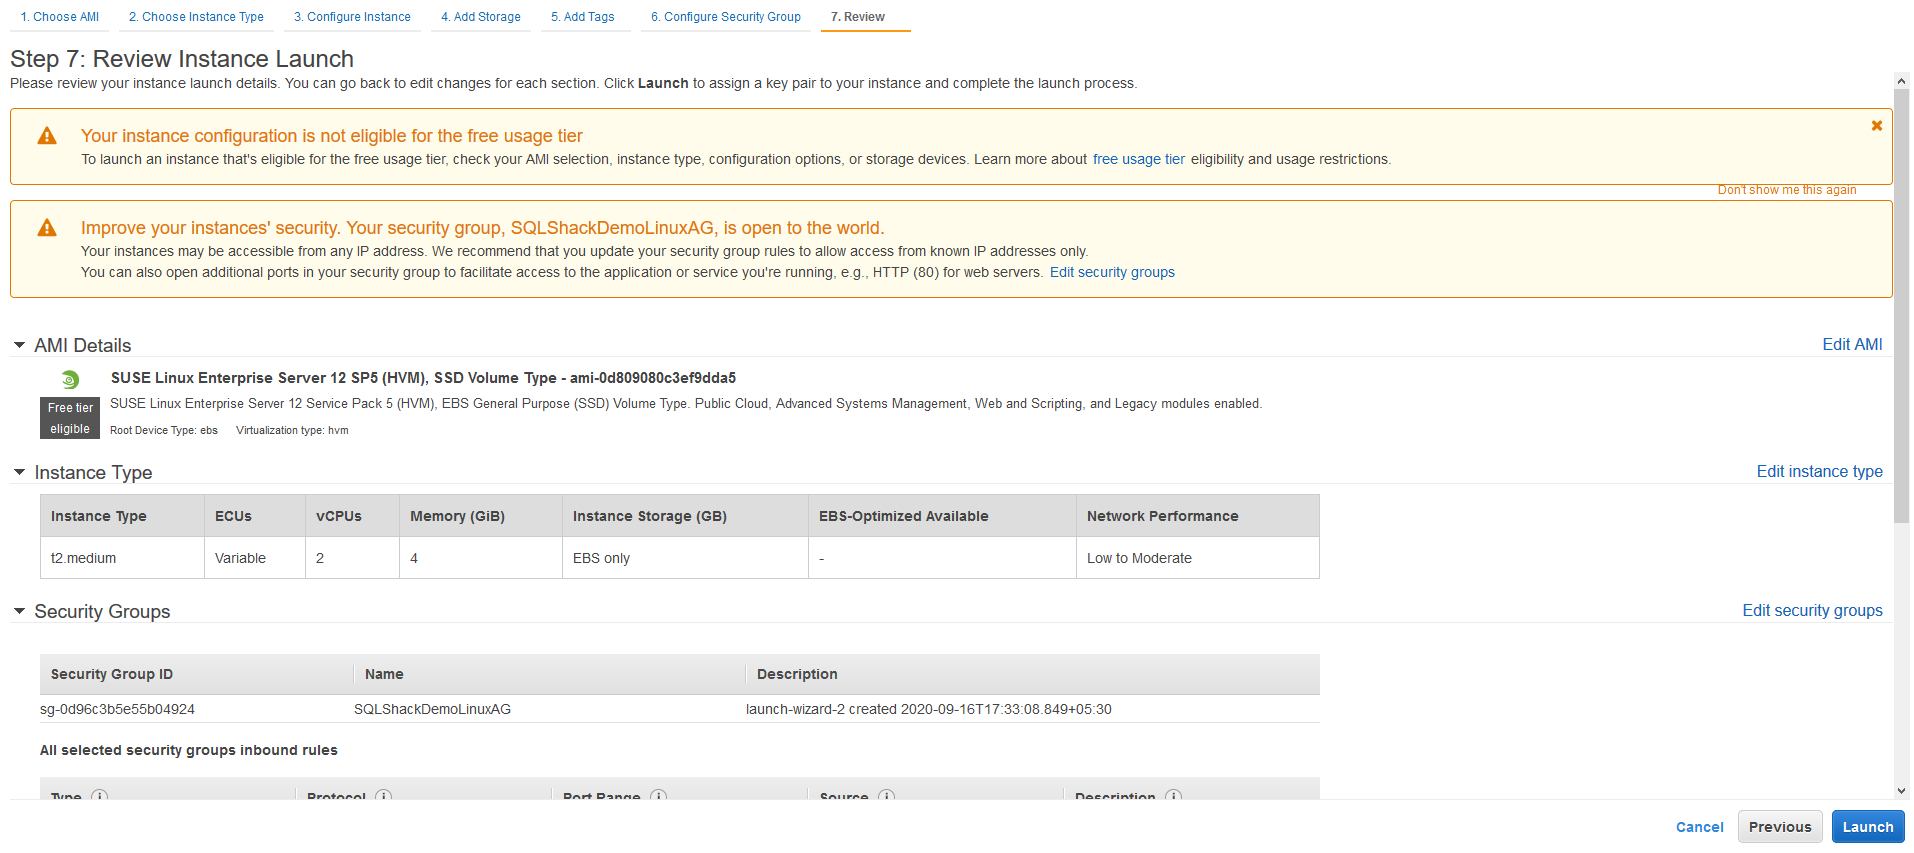 Review Instance Launch for Amazon EC2 instance